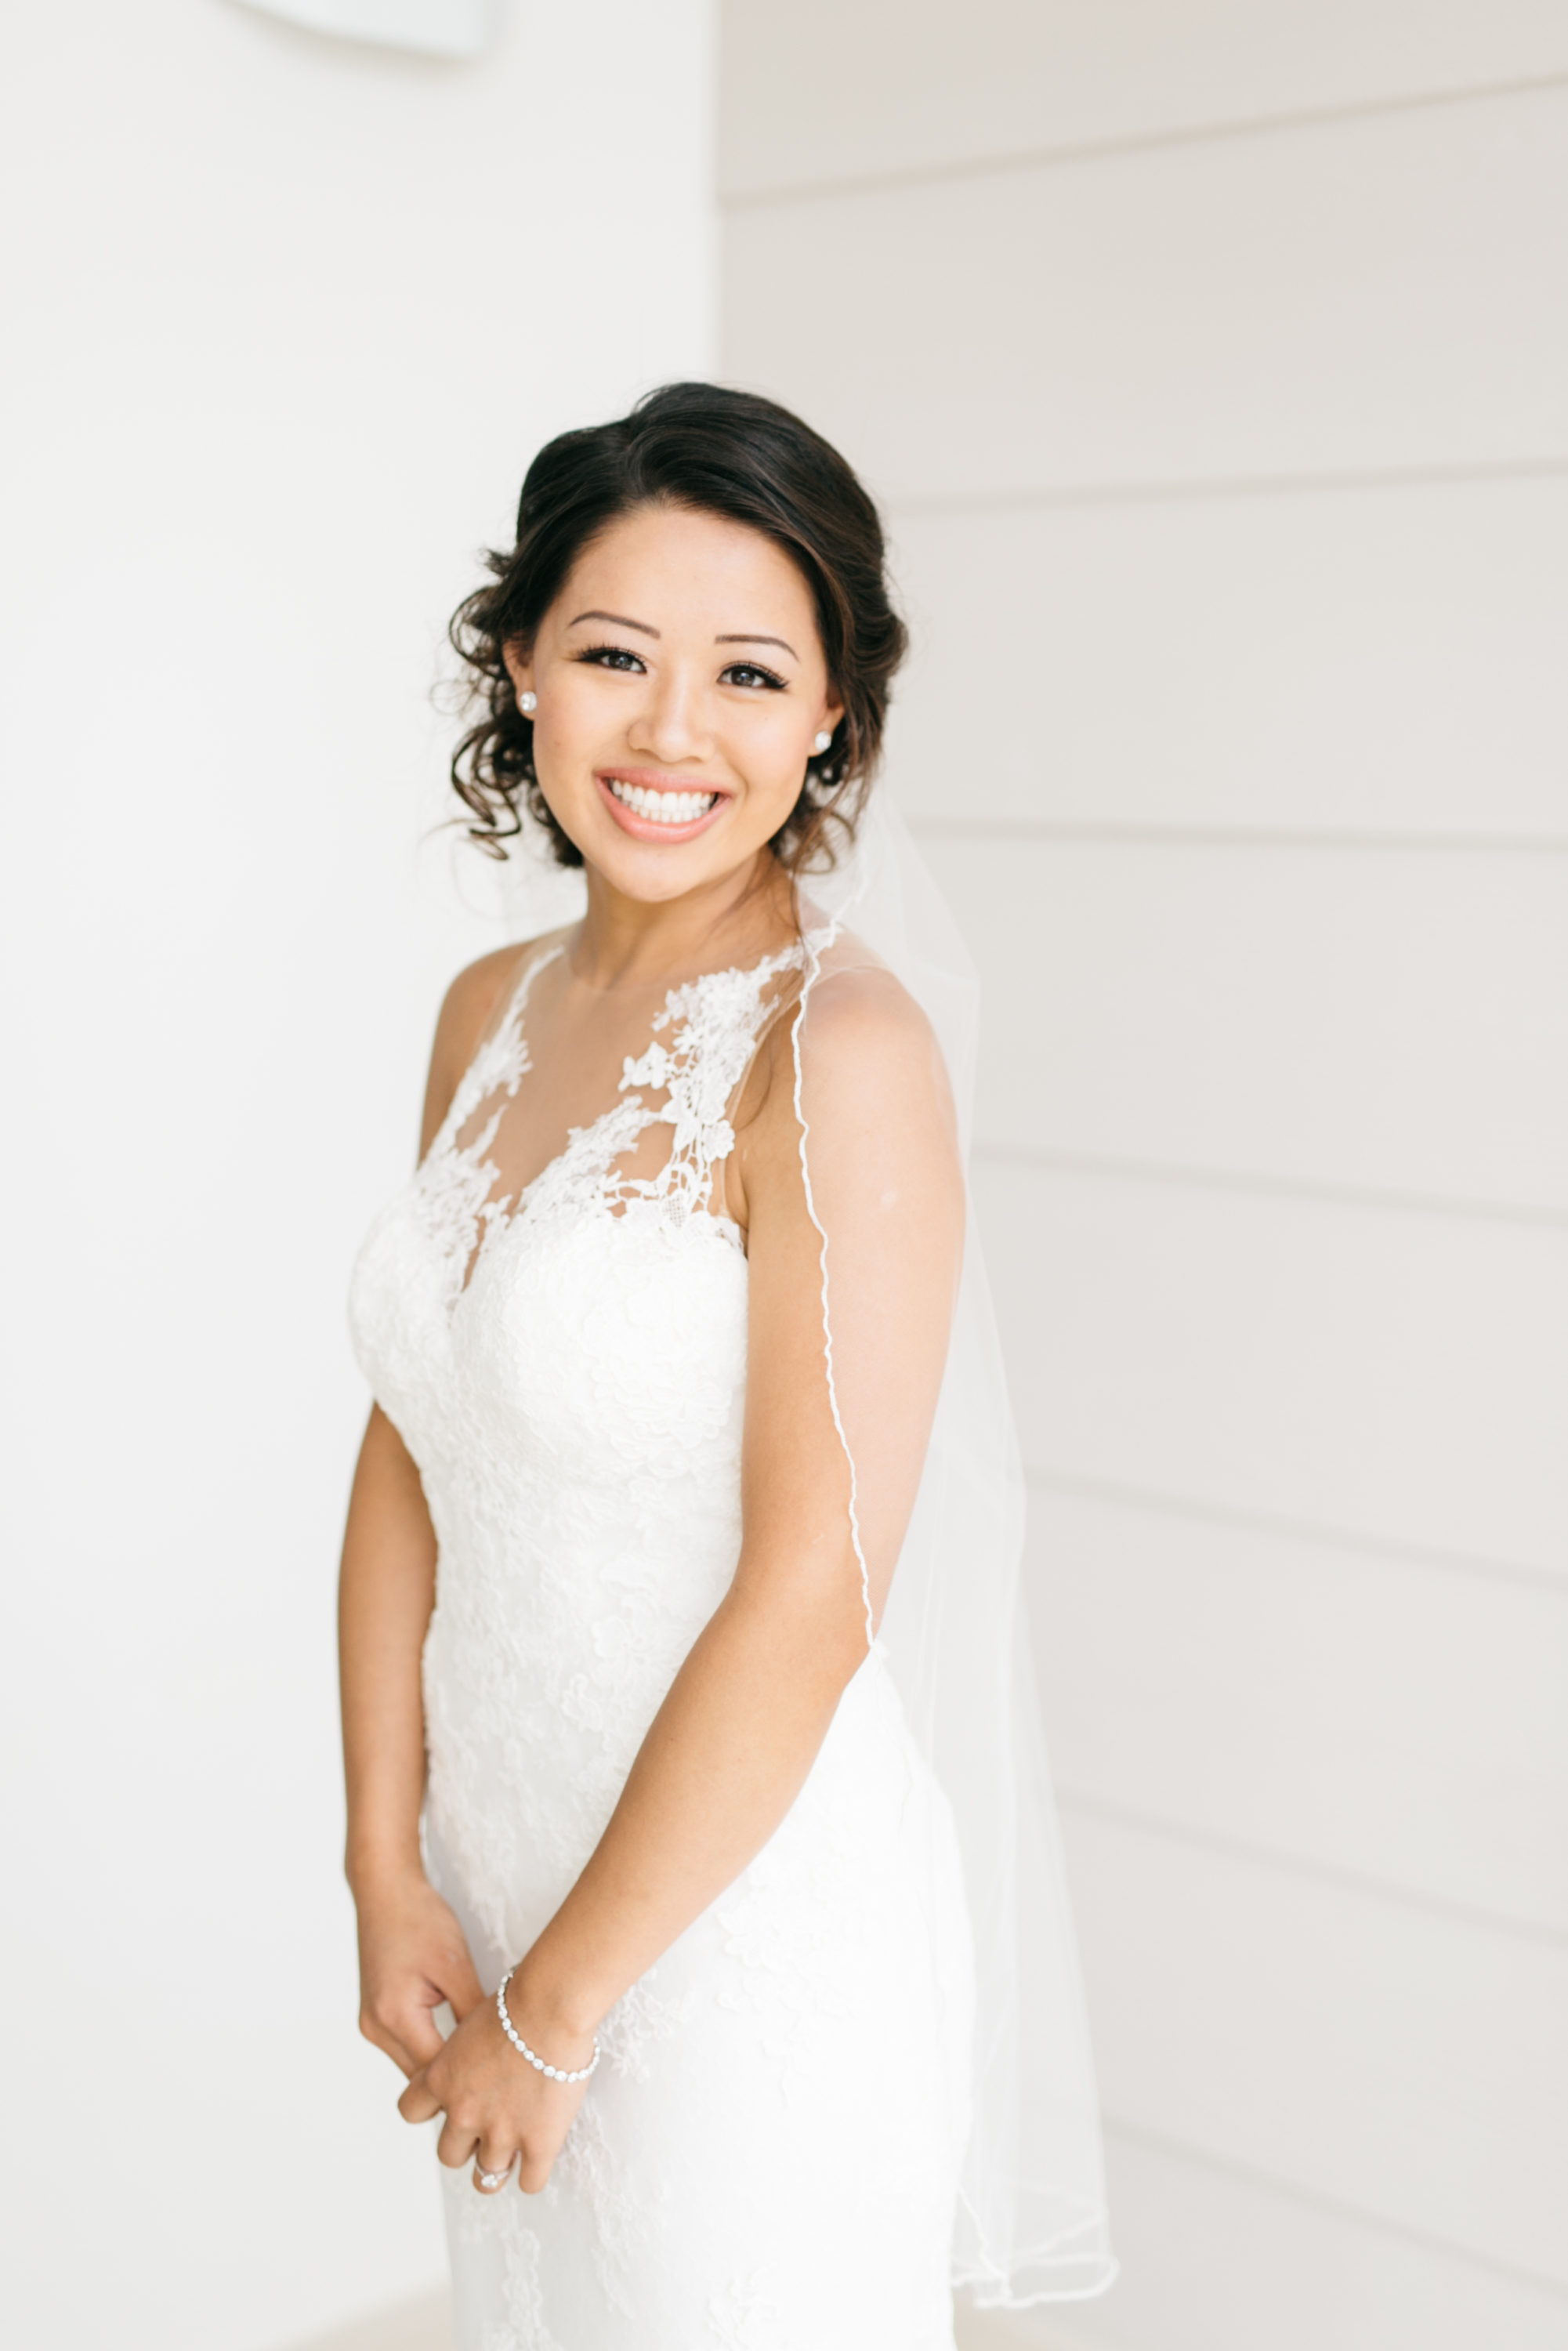 Bride portrait at Royalton White Sands Resort